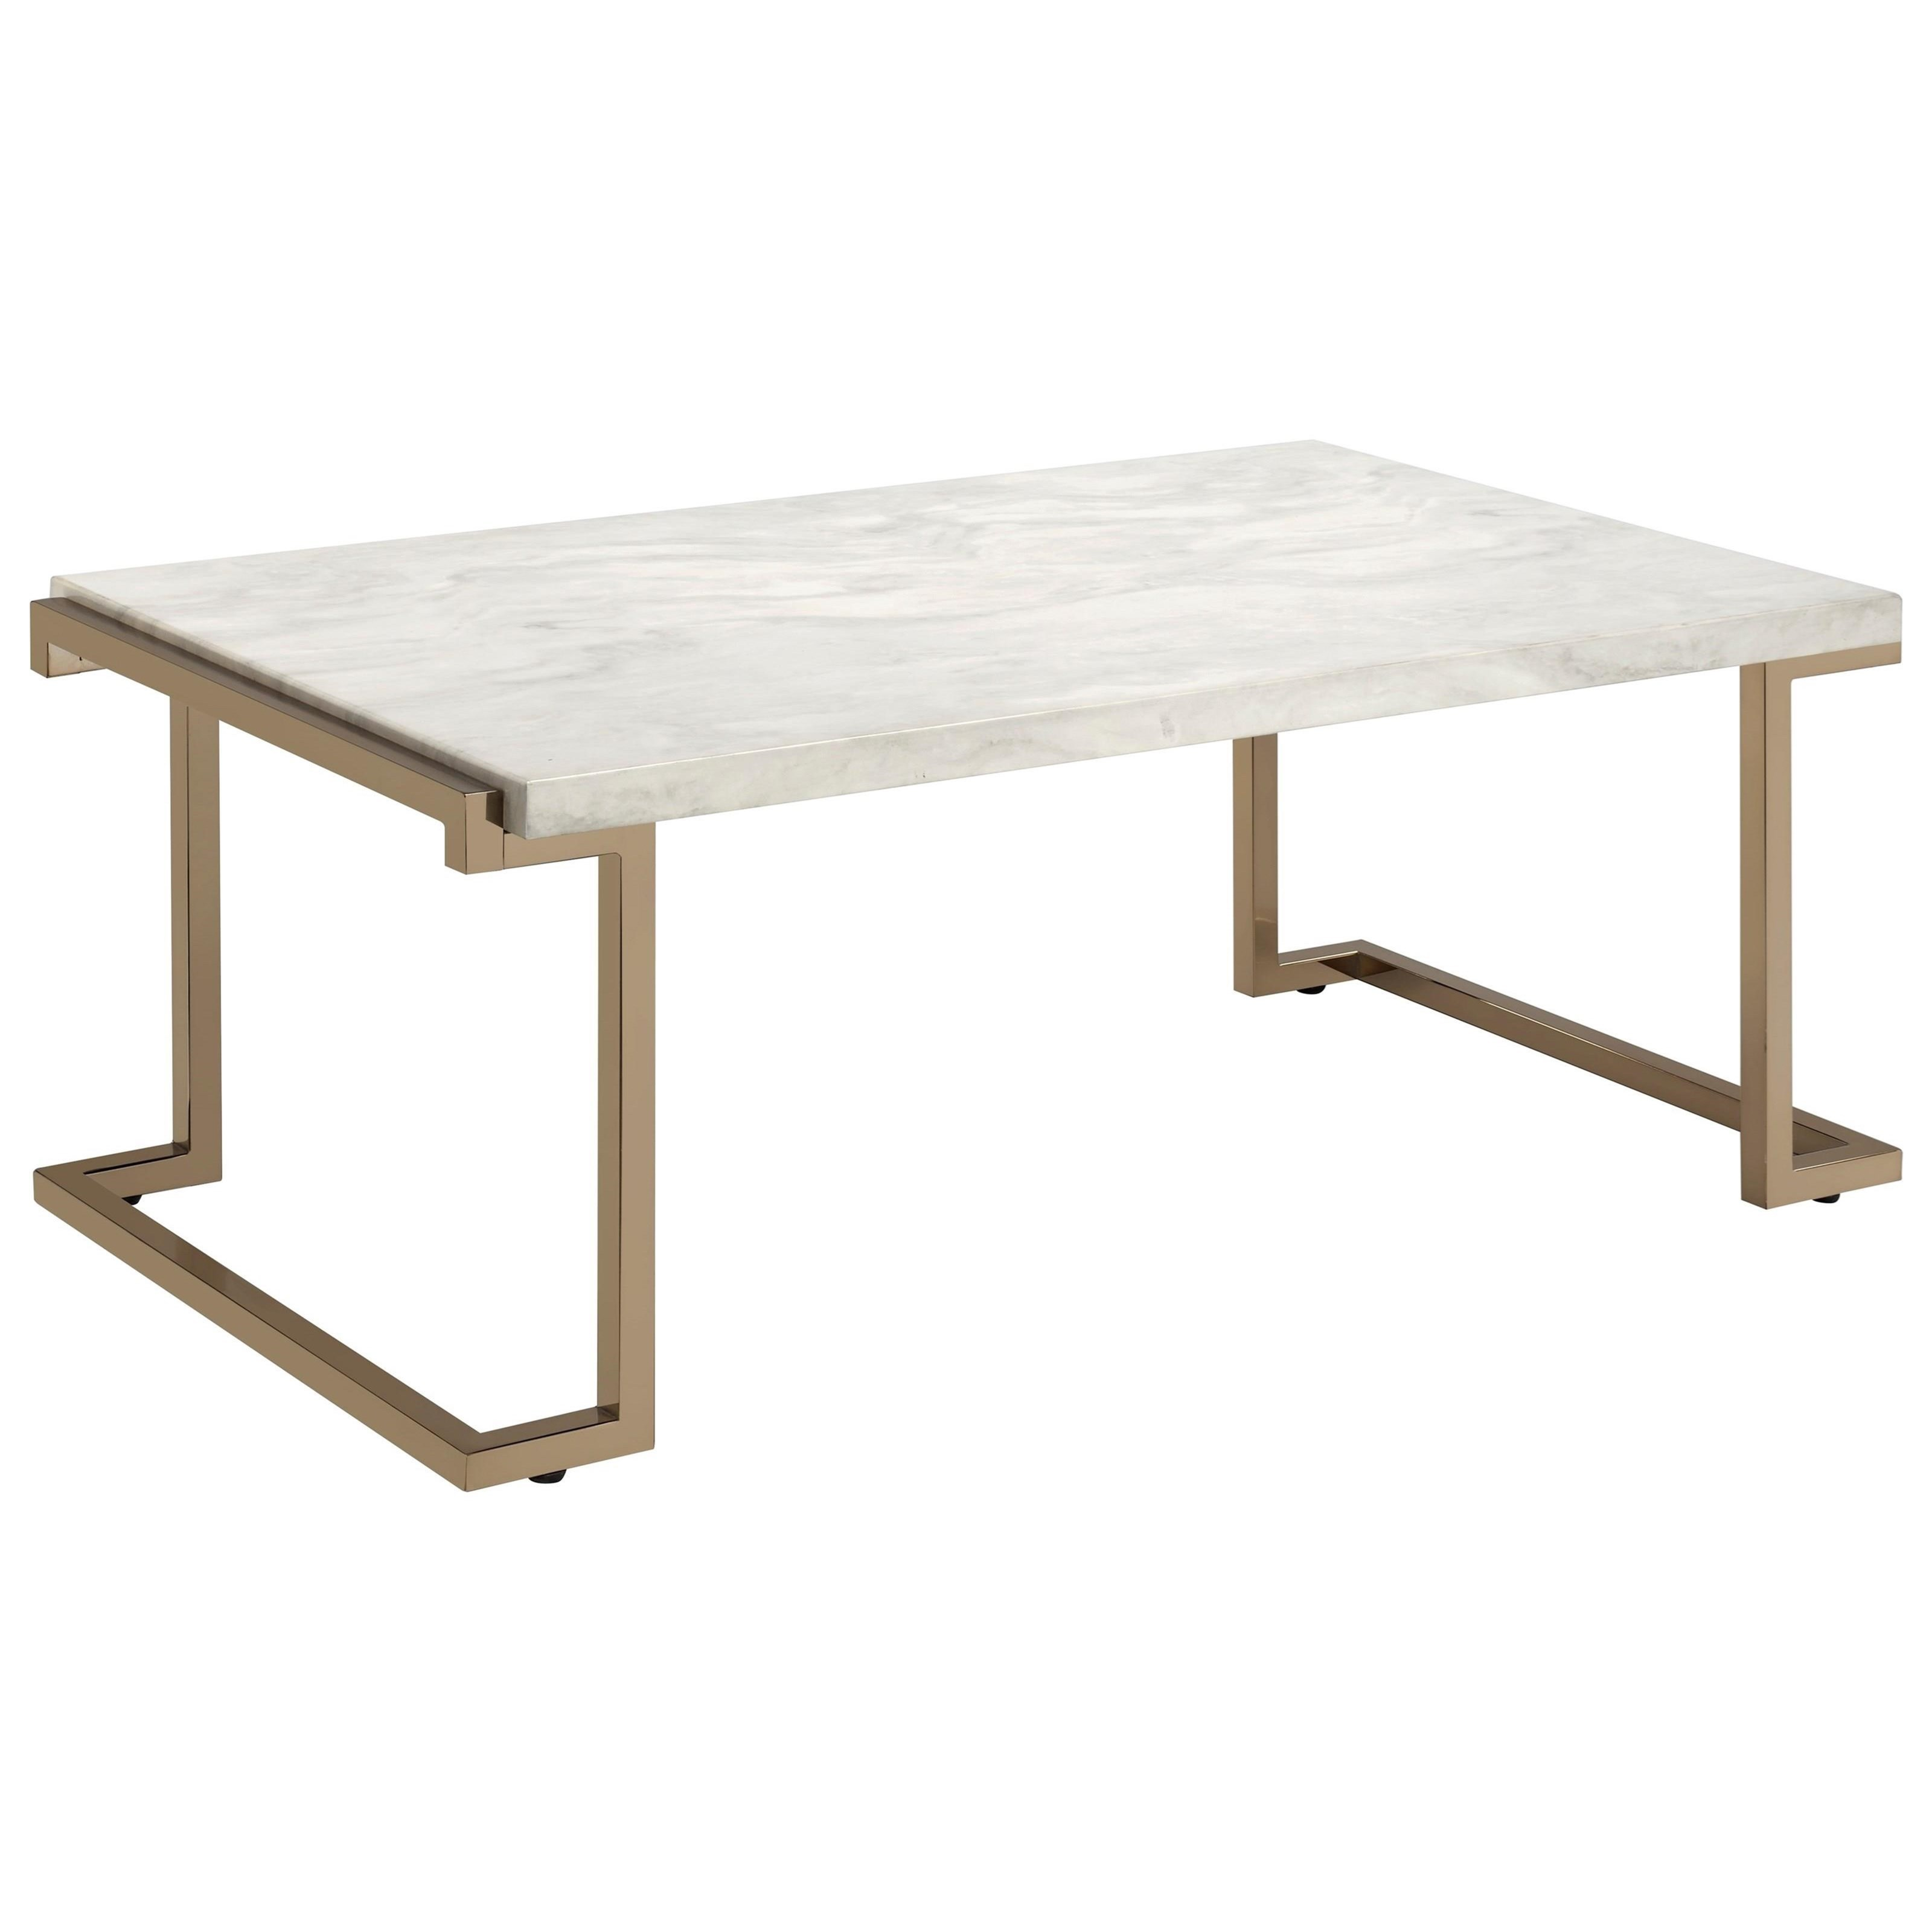 Boice II Coffee Table by Acme Furniture at A1 Furniture & Mattress